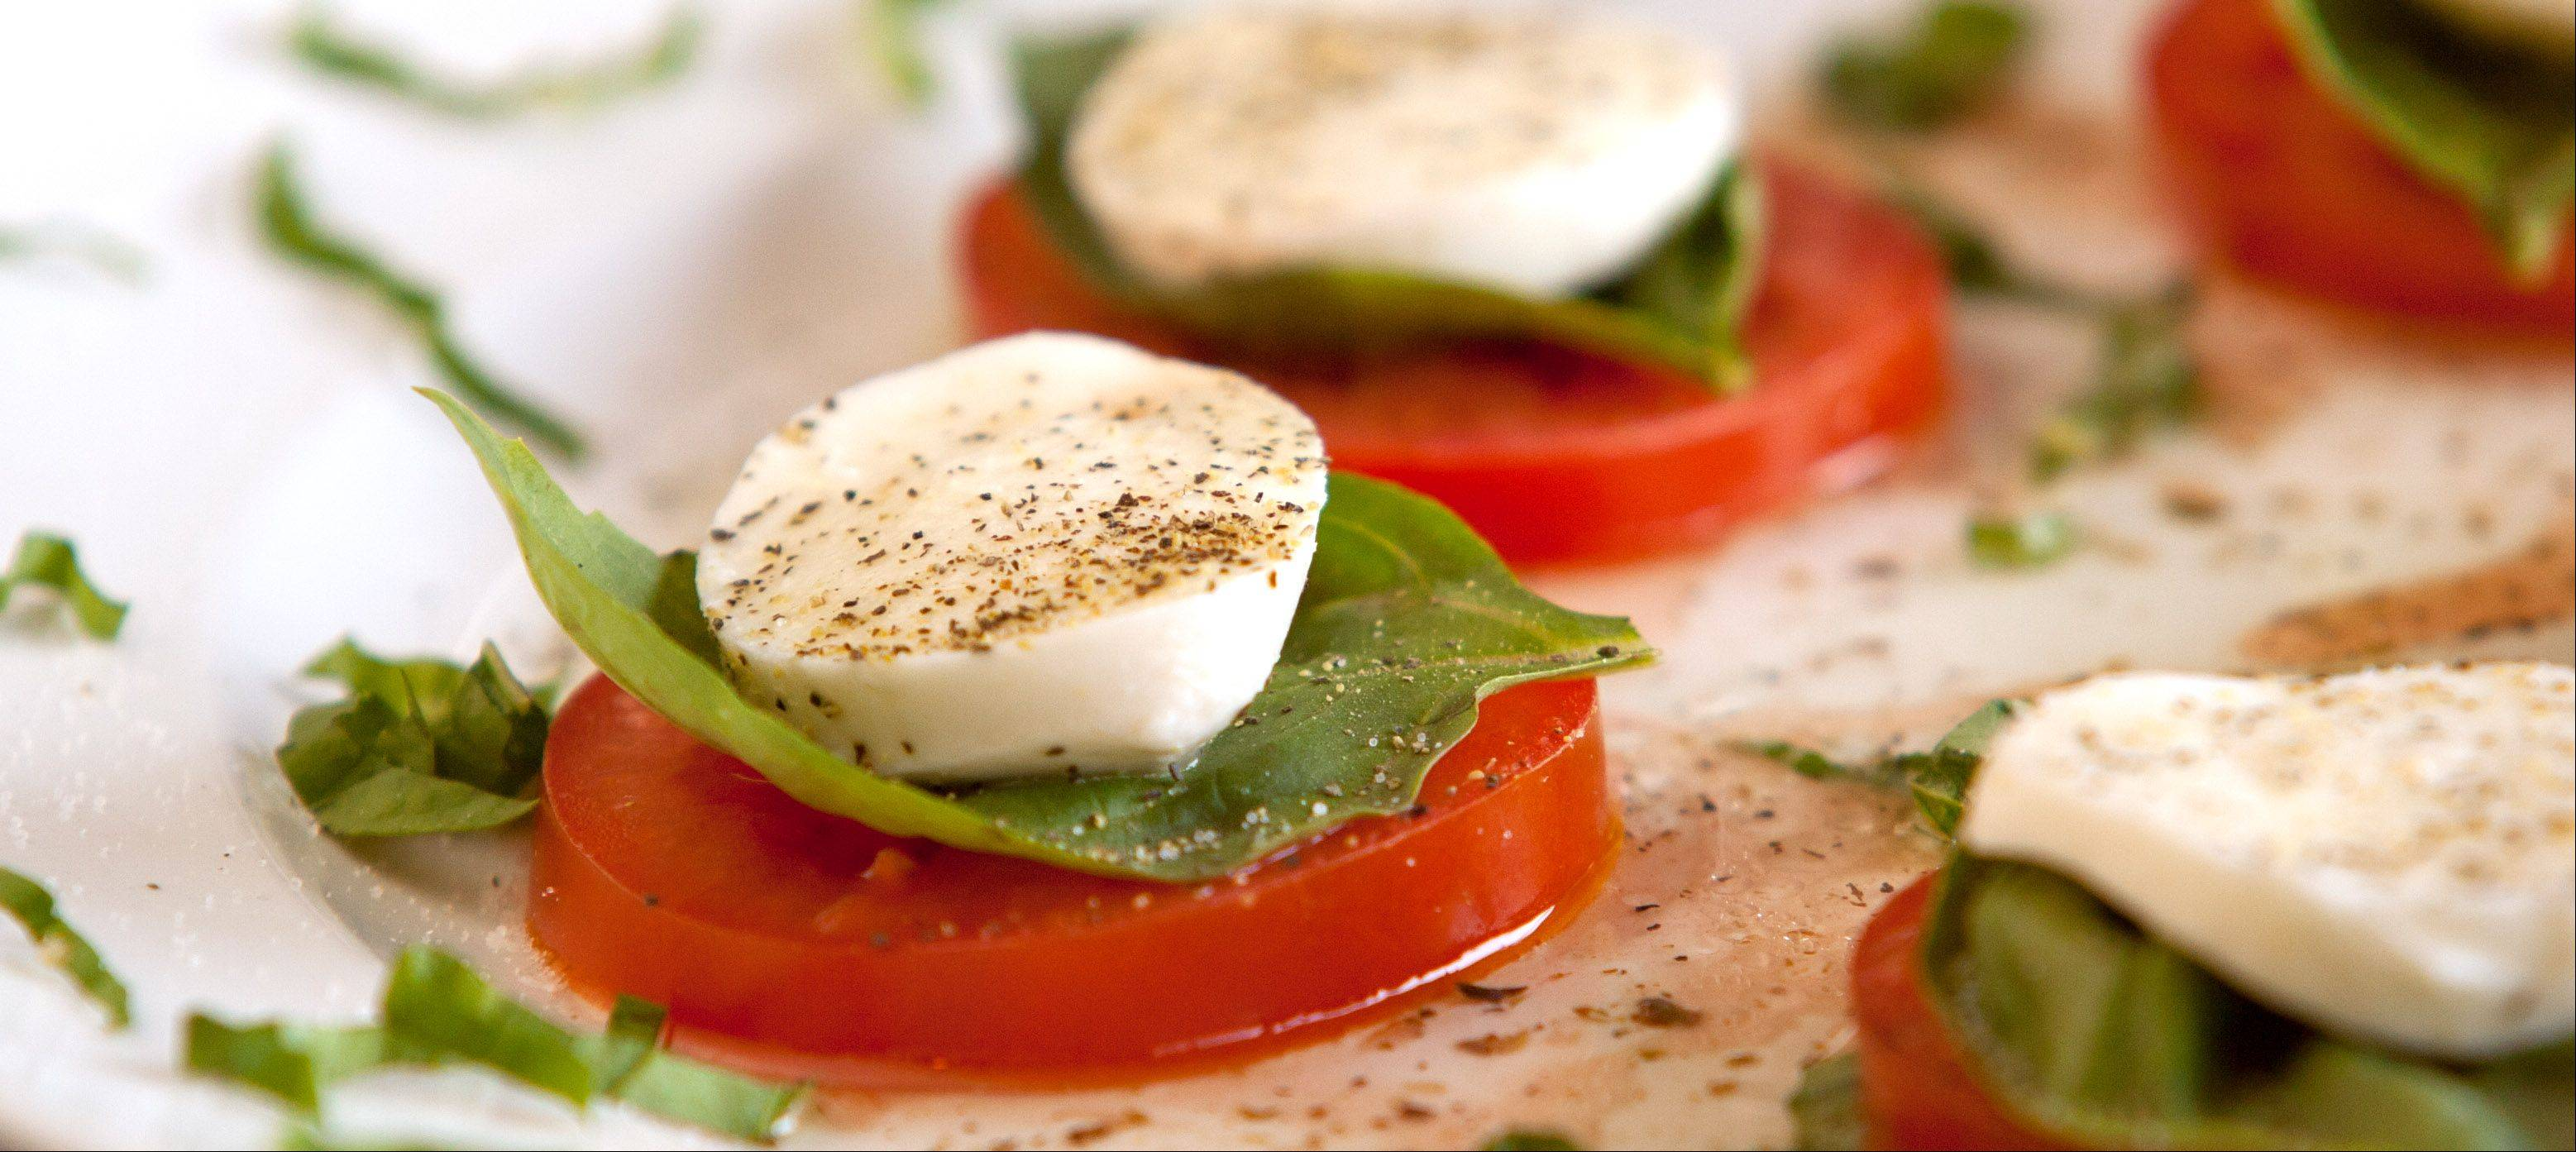 Caprese tomato, fresh basil and mozzarella is on the menu at Navarro's of Naperville.